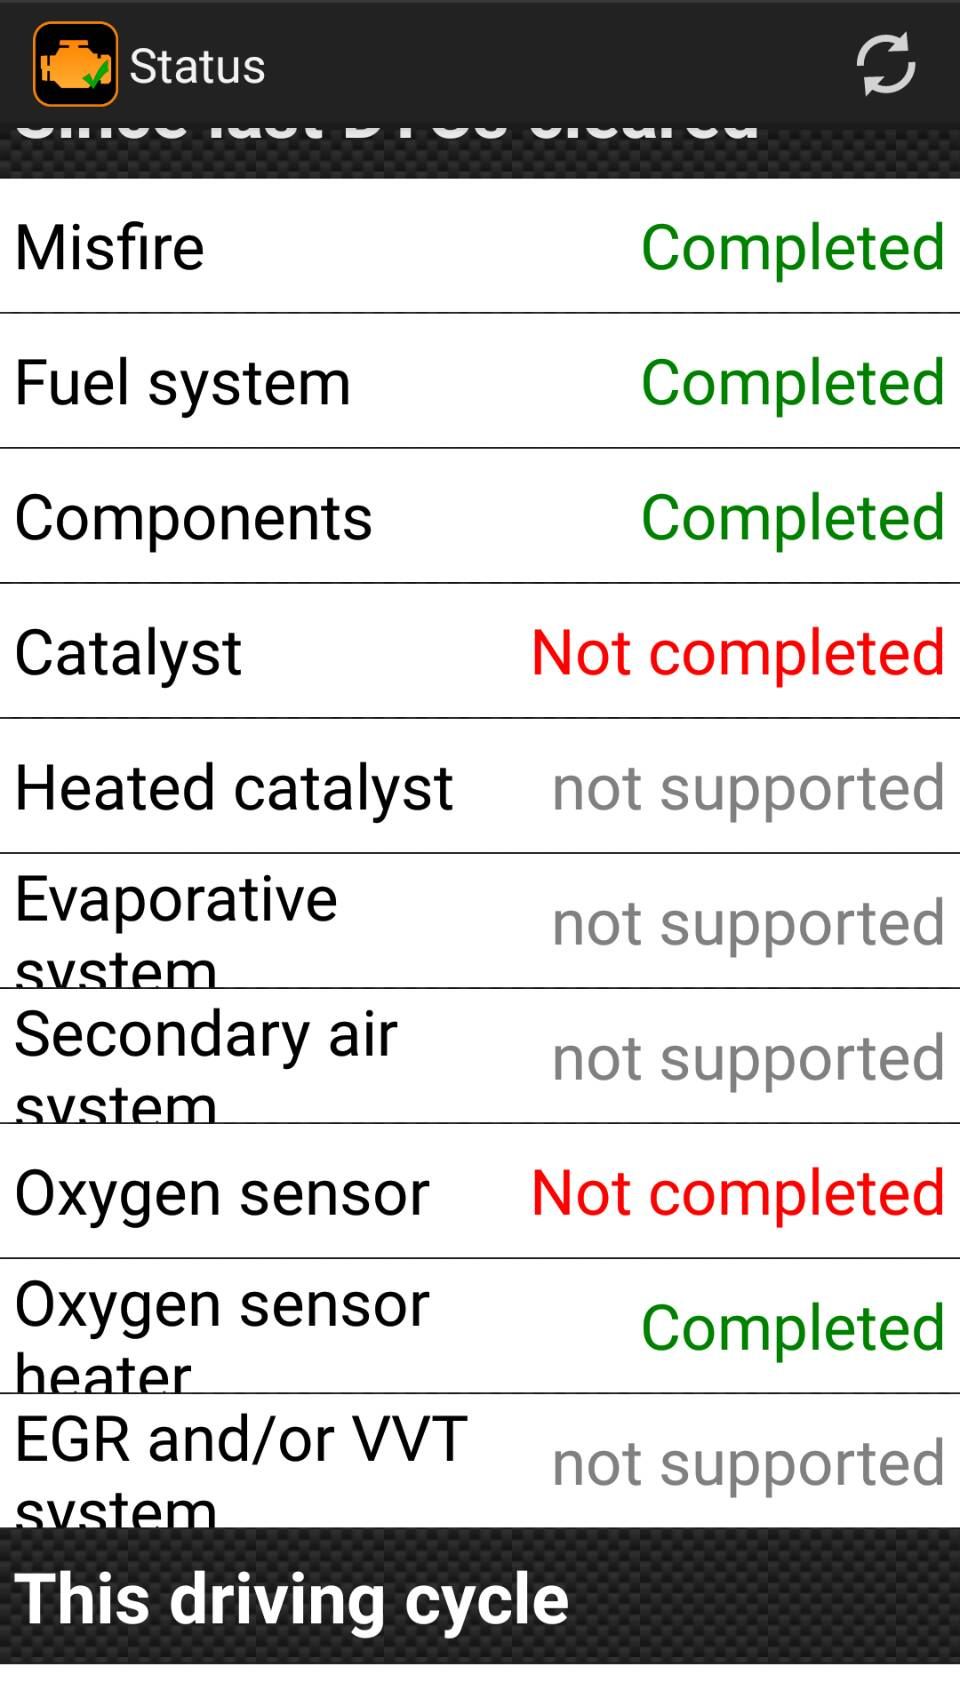 Heated catalyst not supported